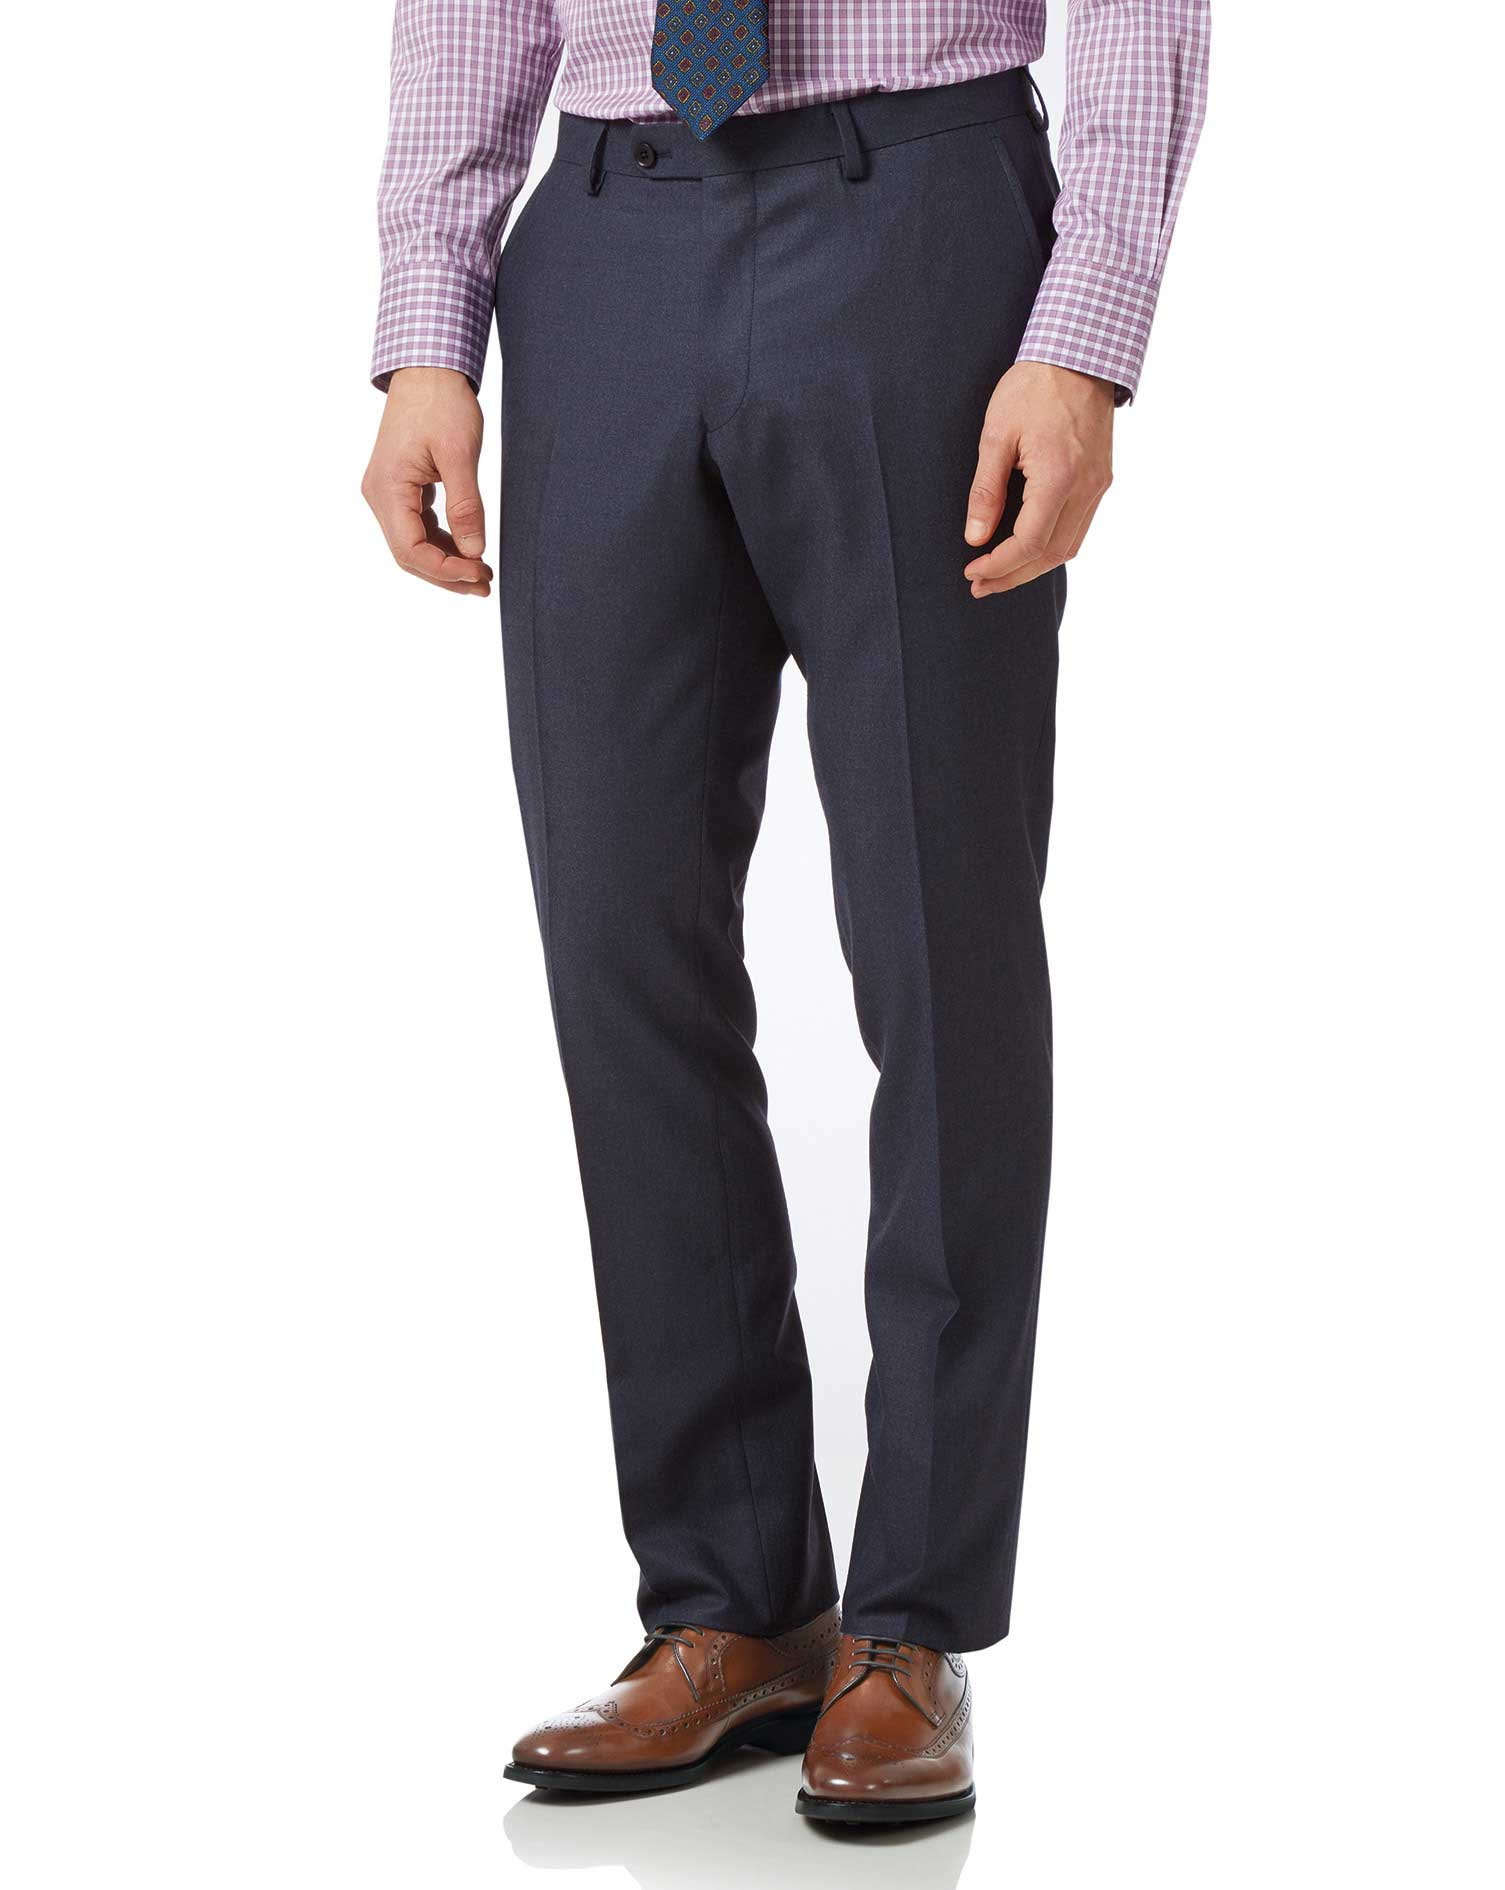 Image of Charles Tyrwhitt Airforce Blue Slim Fit Flannel Business Suit Trousers Size W102 L97 by Charles Tyrwhitt